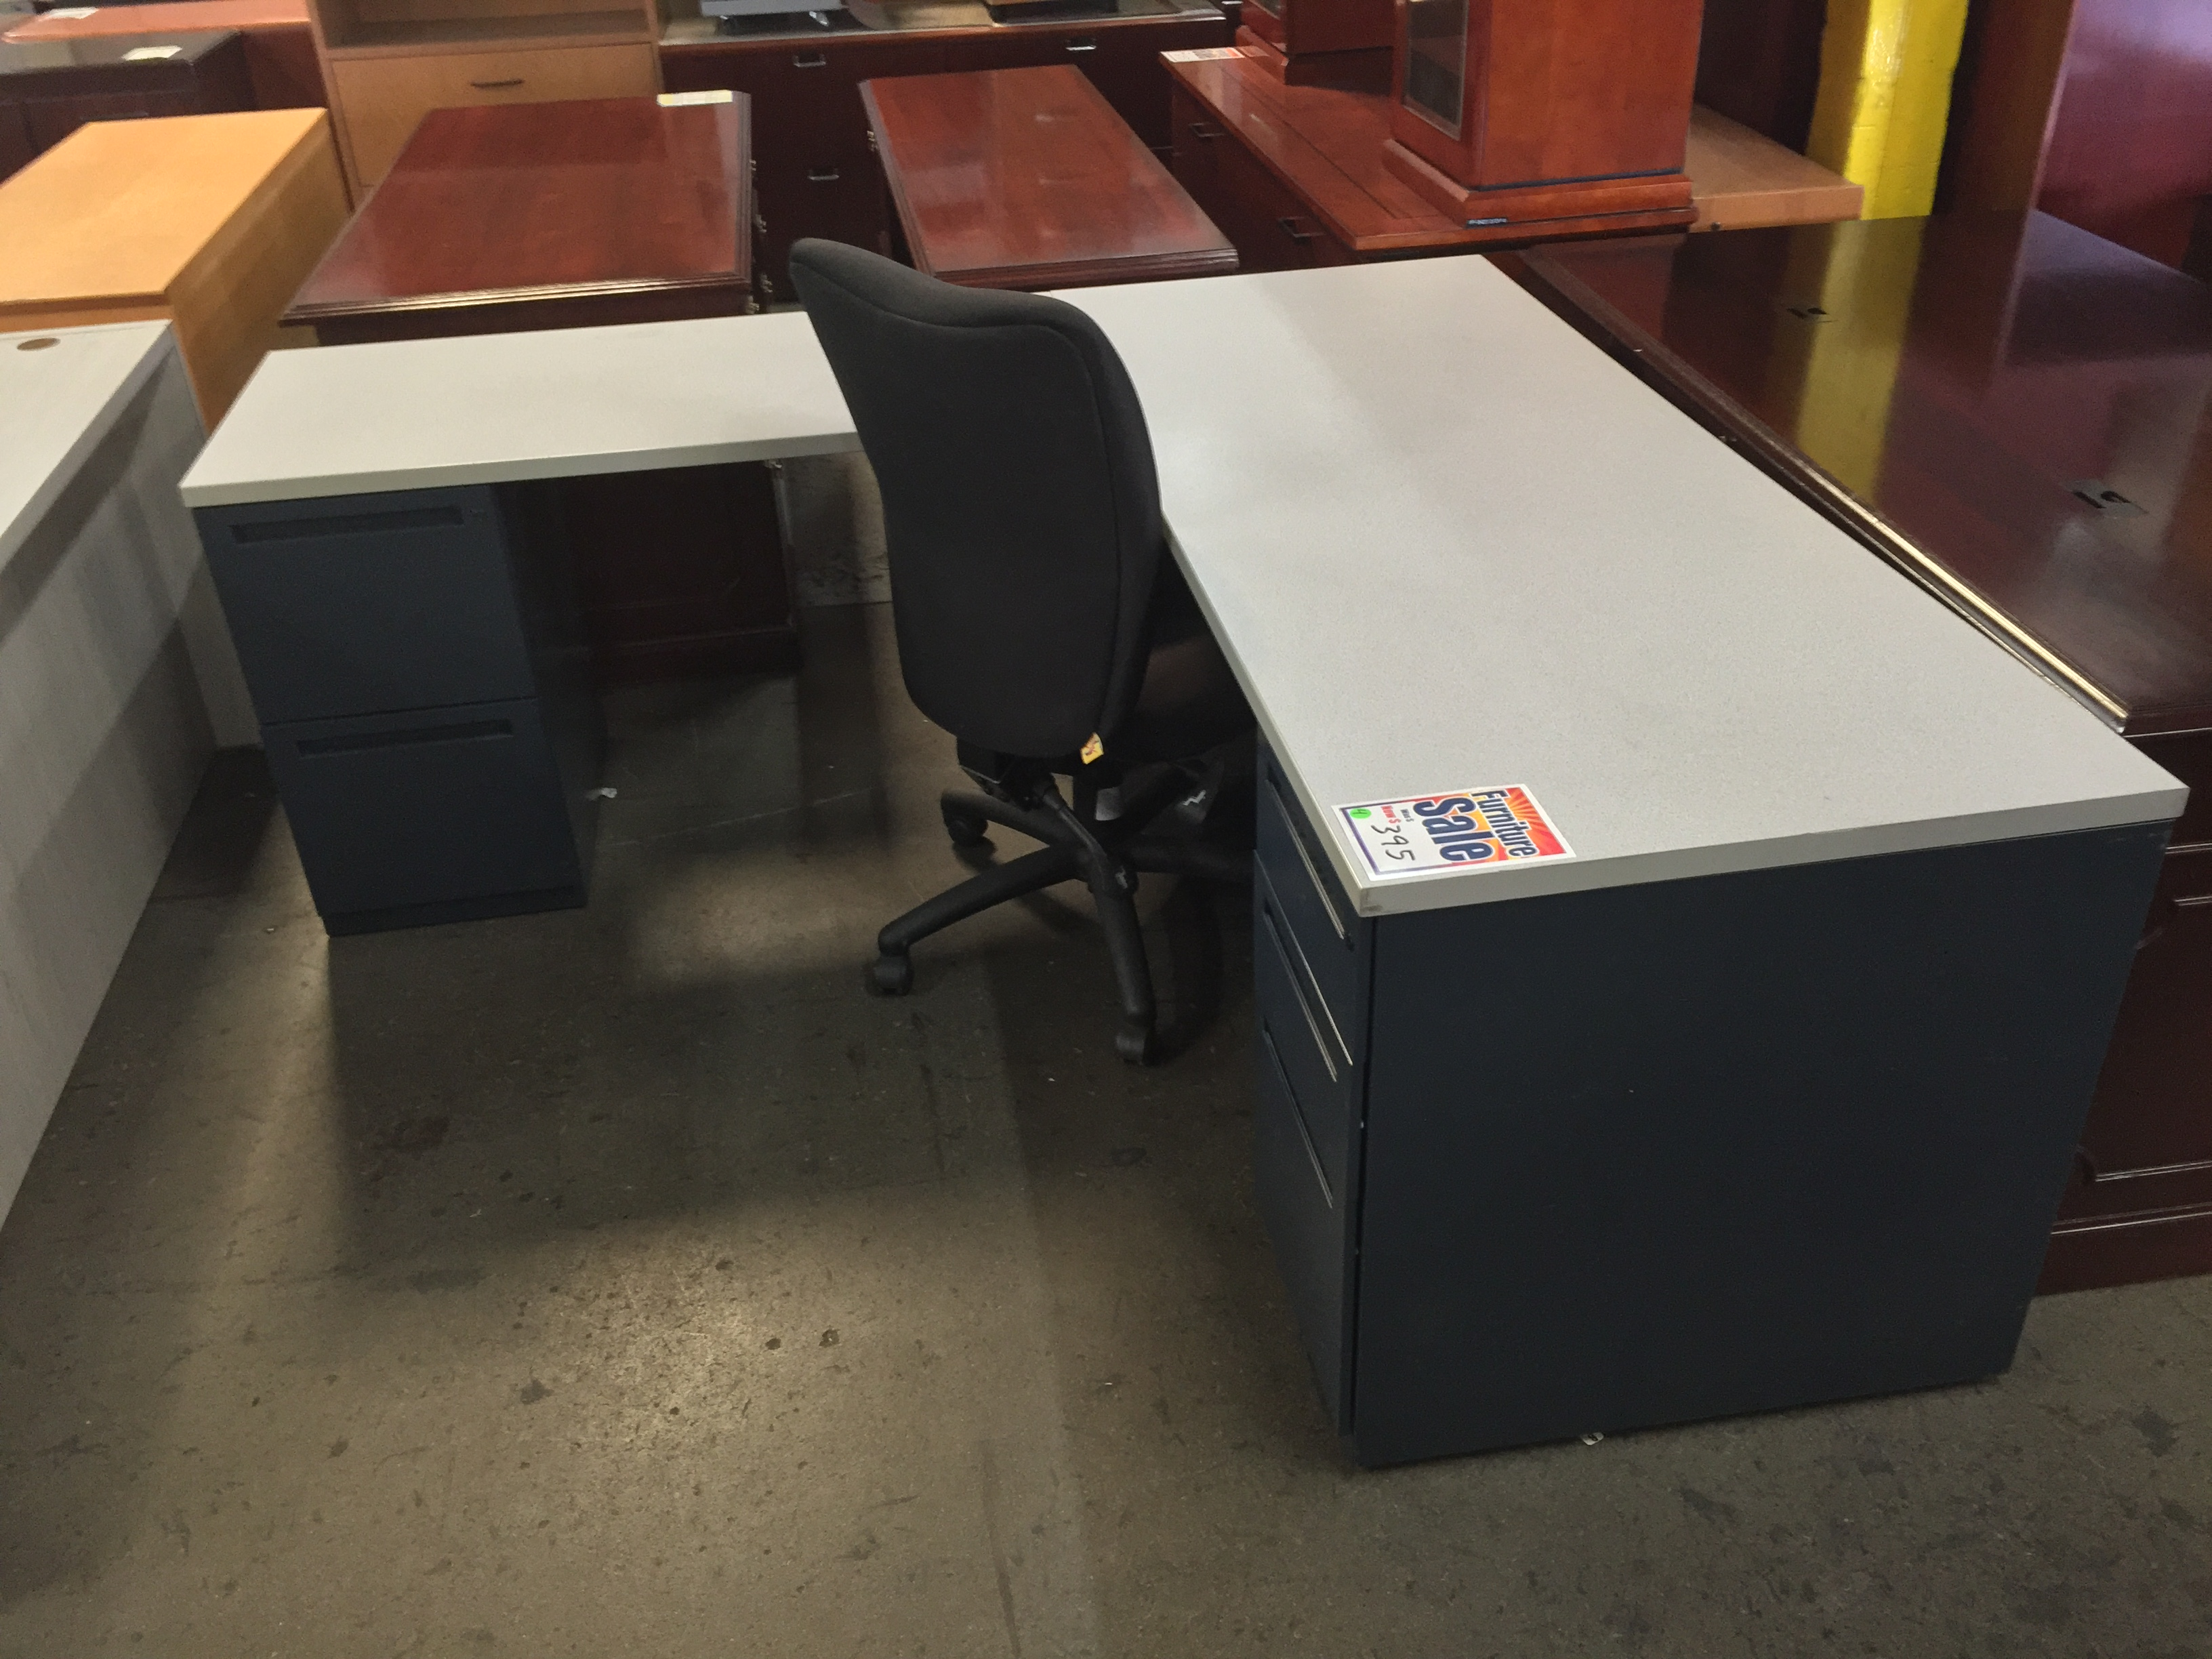 These Durable L Shaped Desks From Allsteel Are A Good Fit For Any Office Light Grey Laminate Worksurface With Dark Metal Base Will Last Many Years